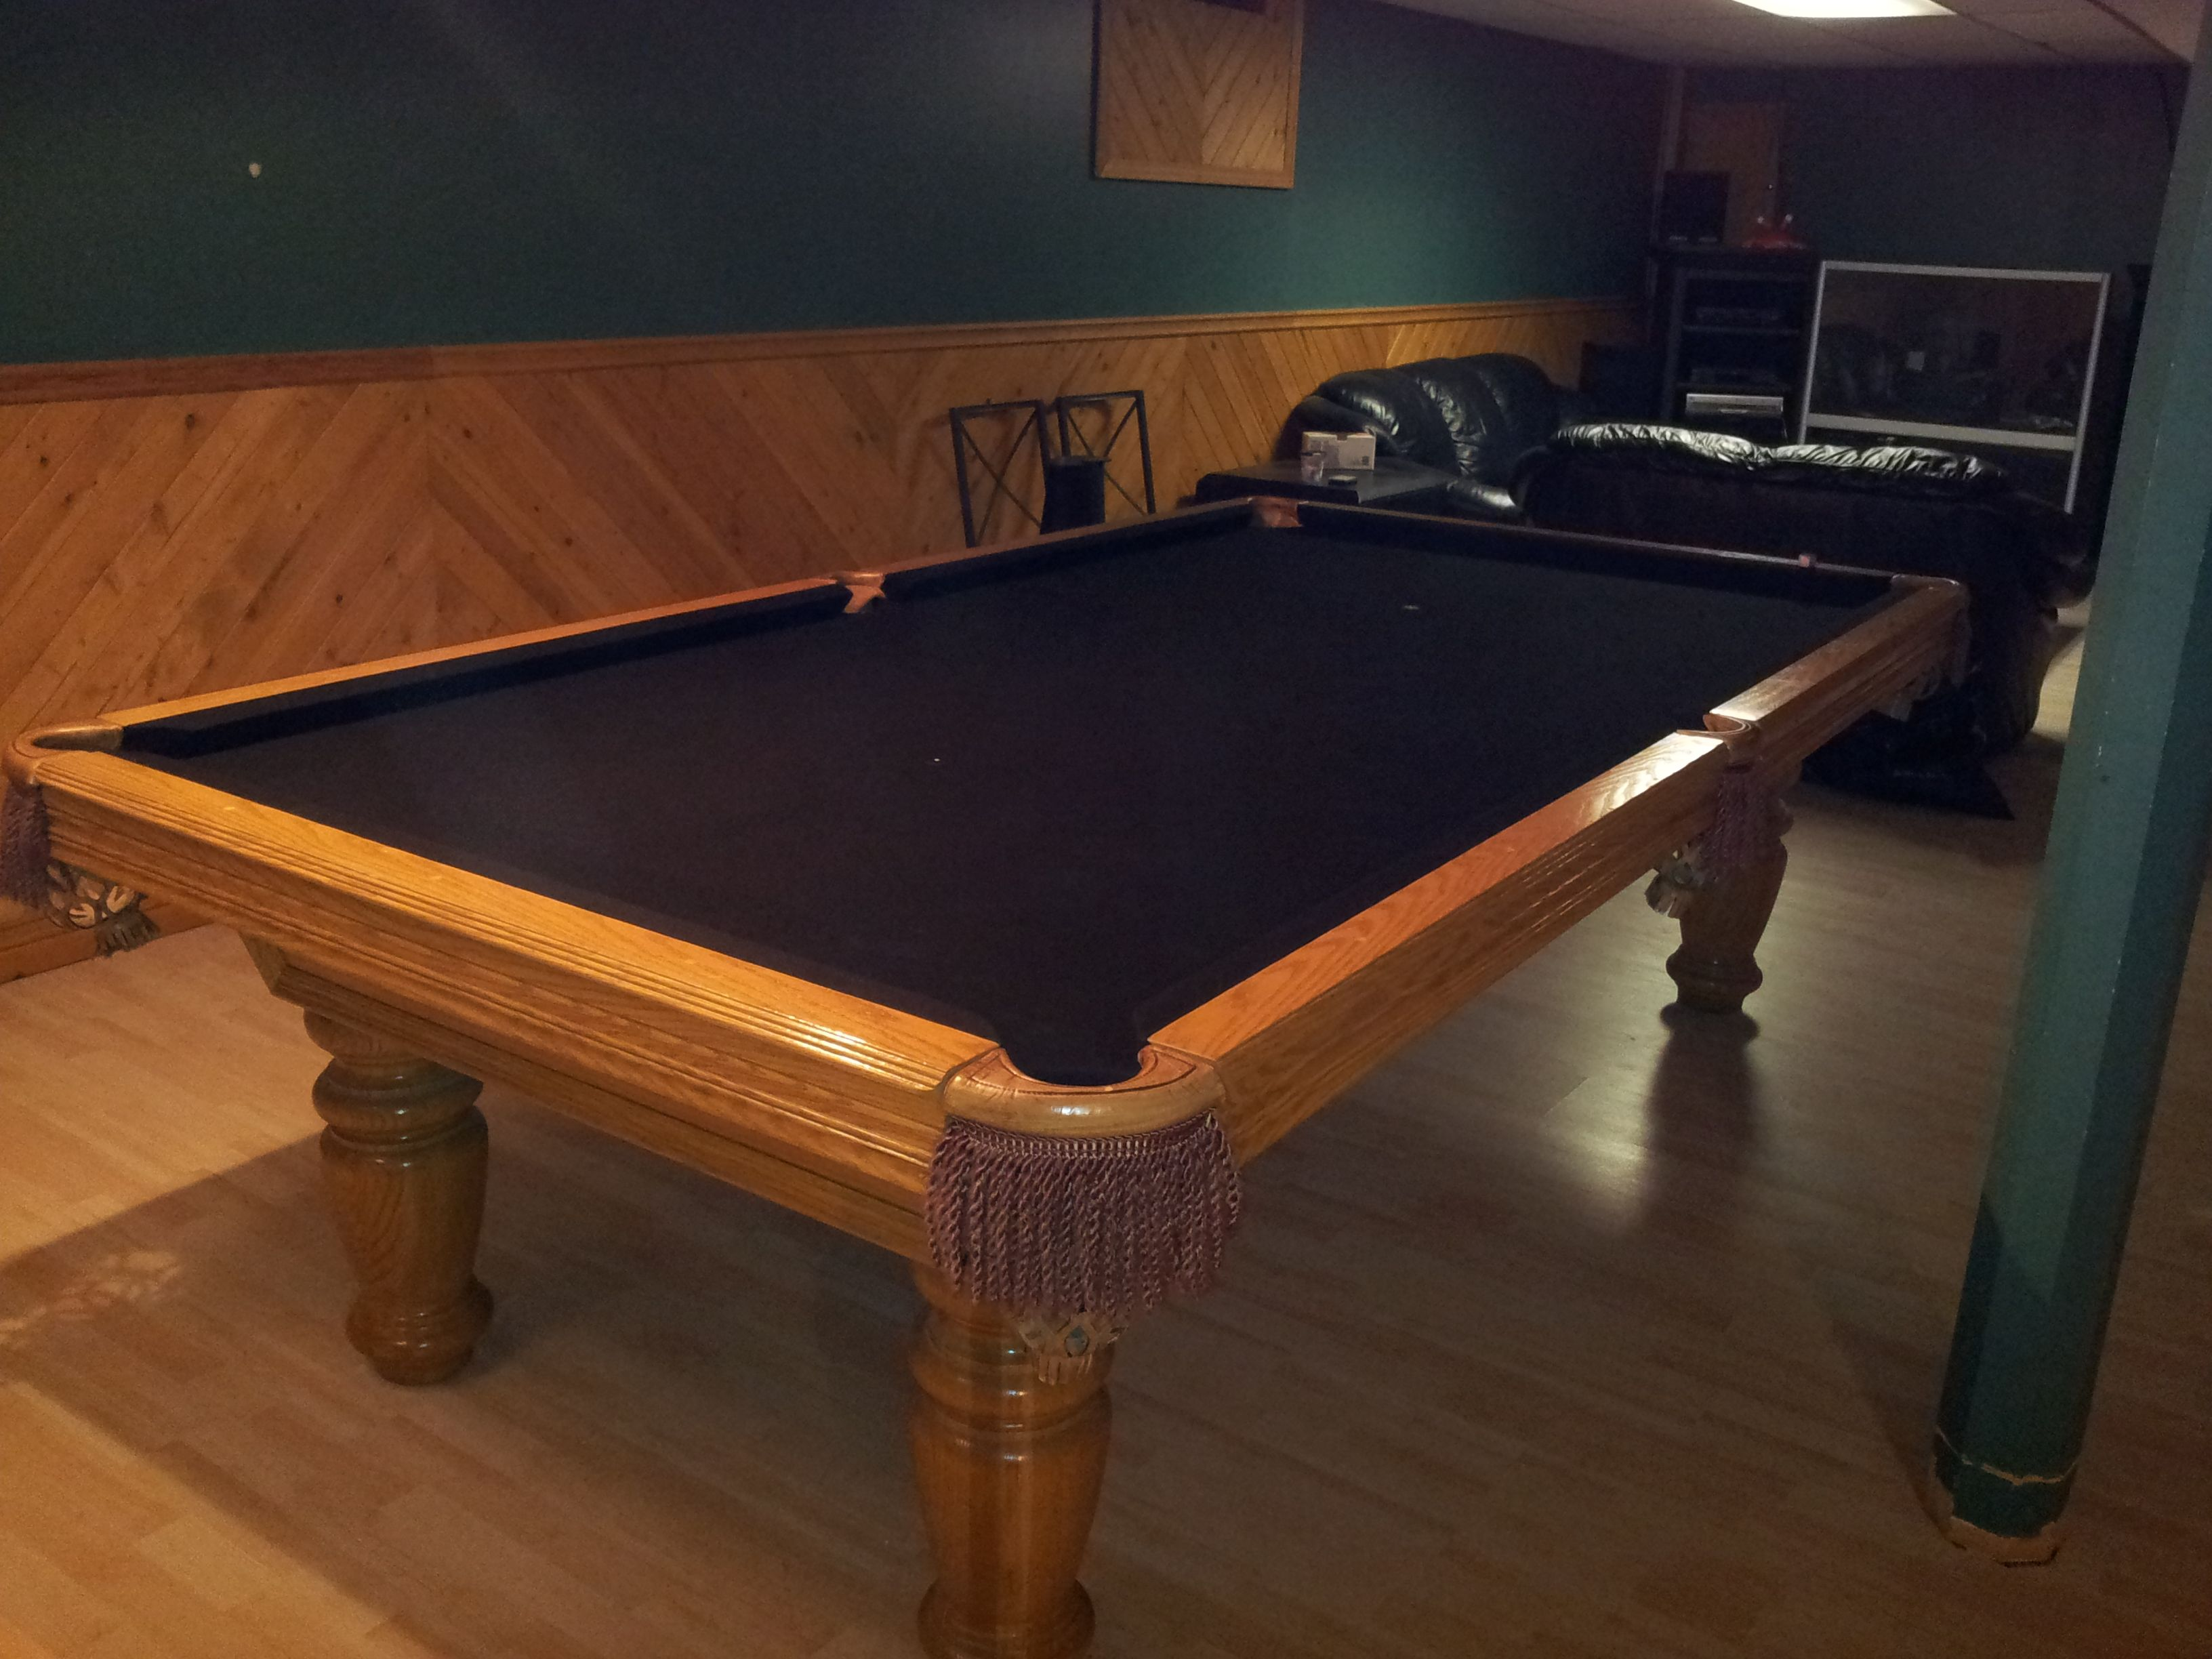 Older Oak Table In Oak Room With New Black Cloth For Pool